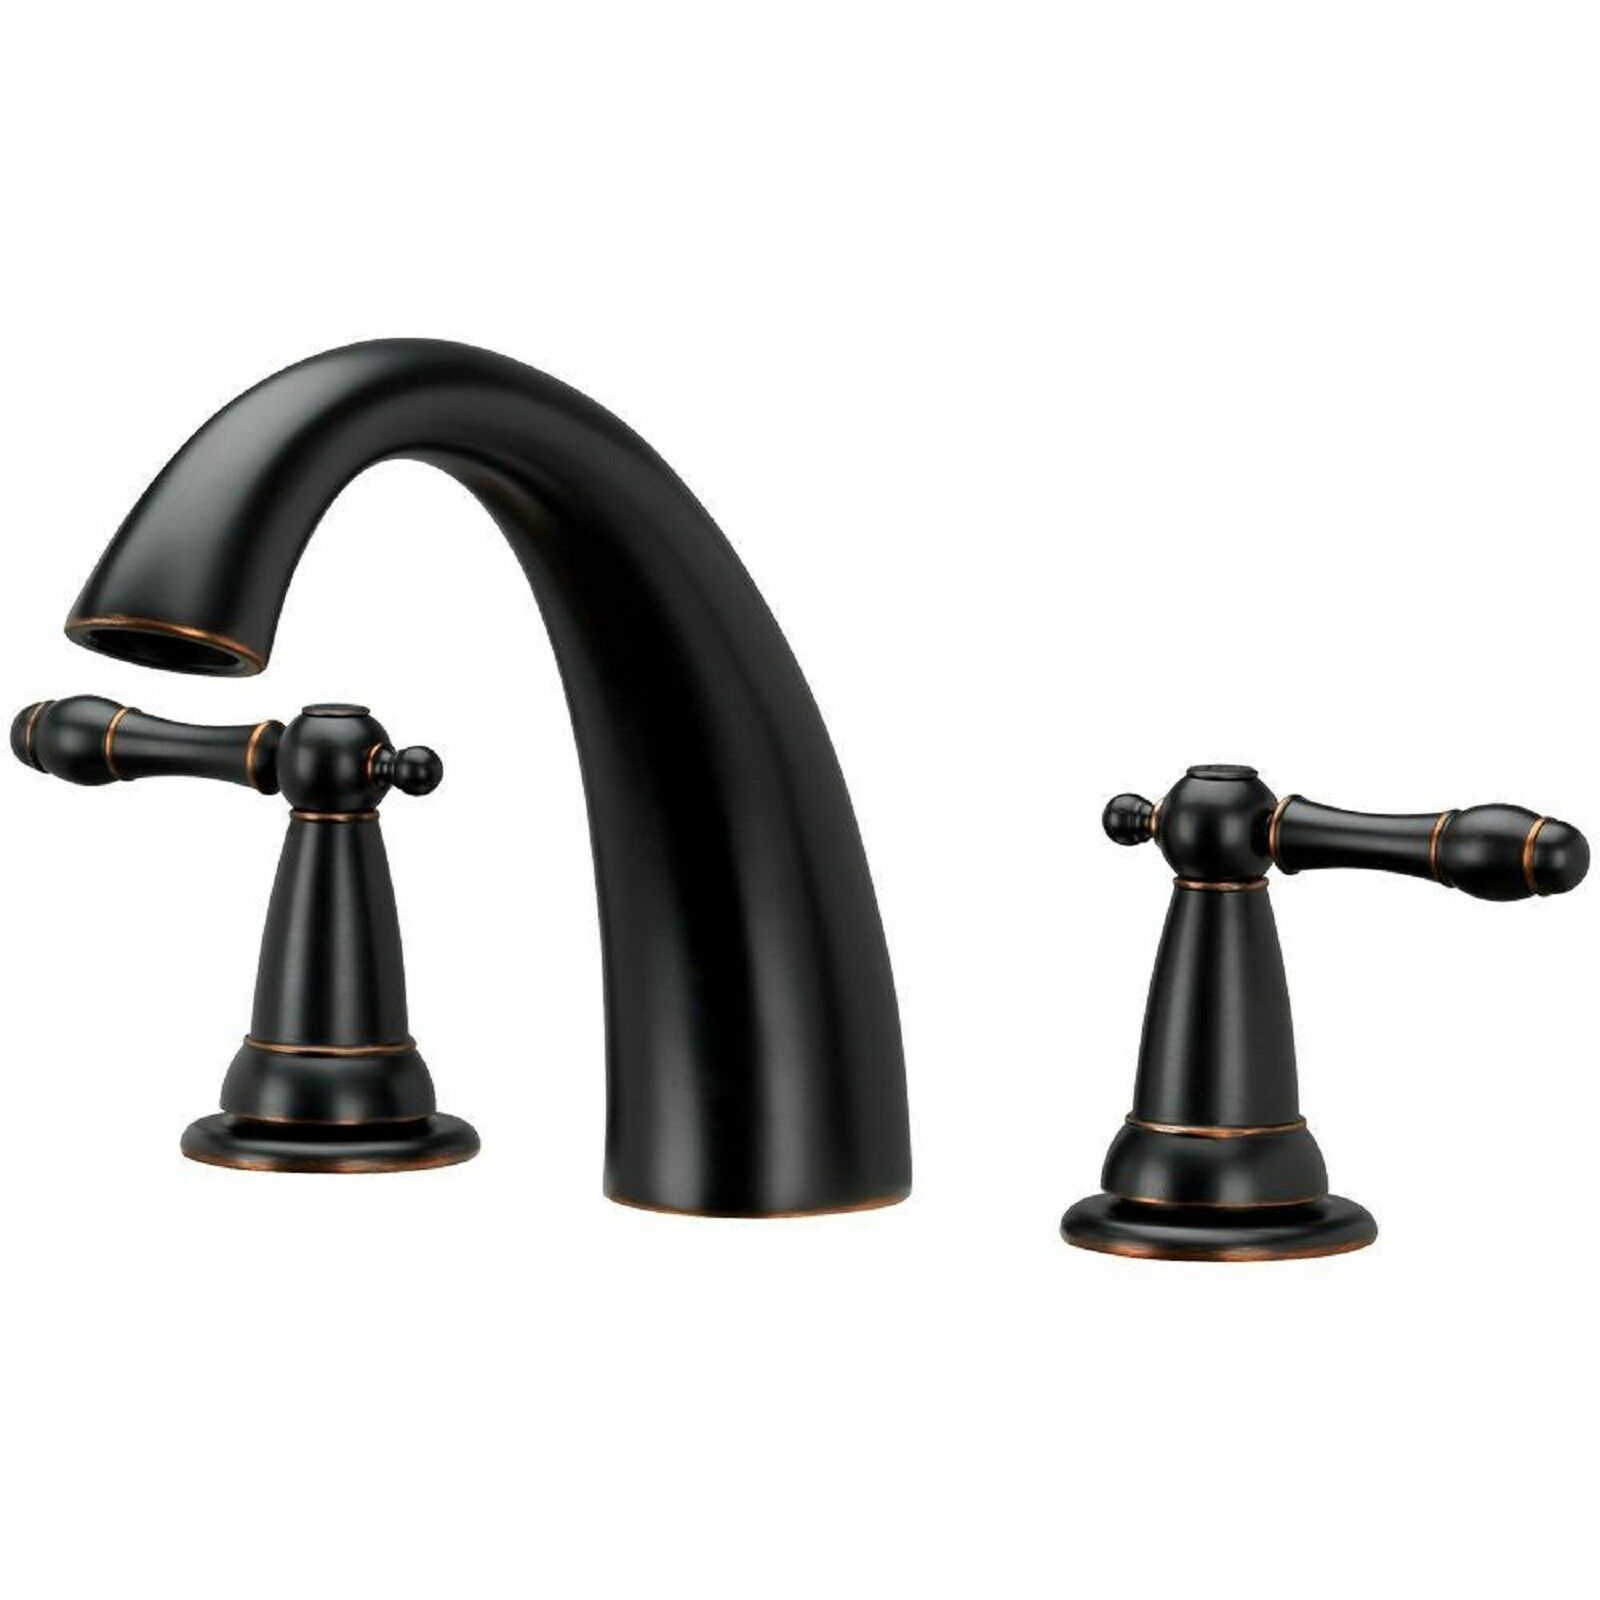 Brushed Bronze Roman Tub Faucet With Ceramic Cartridge & Metal Lever ...